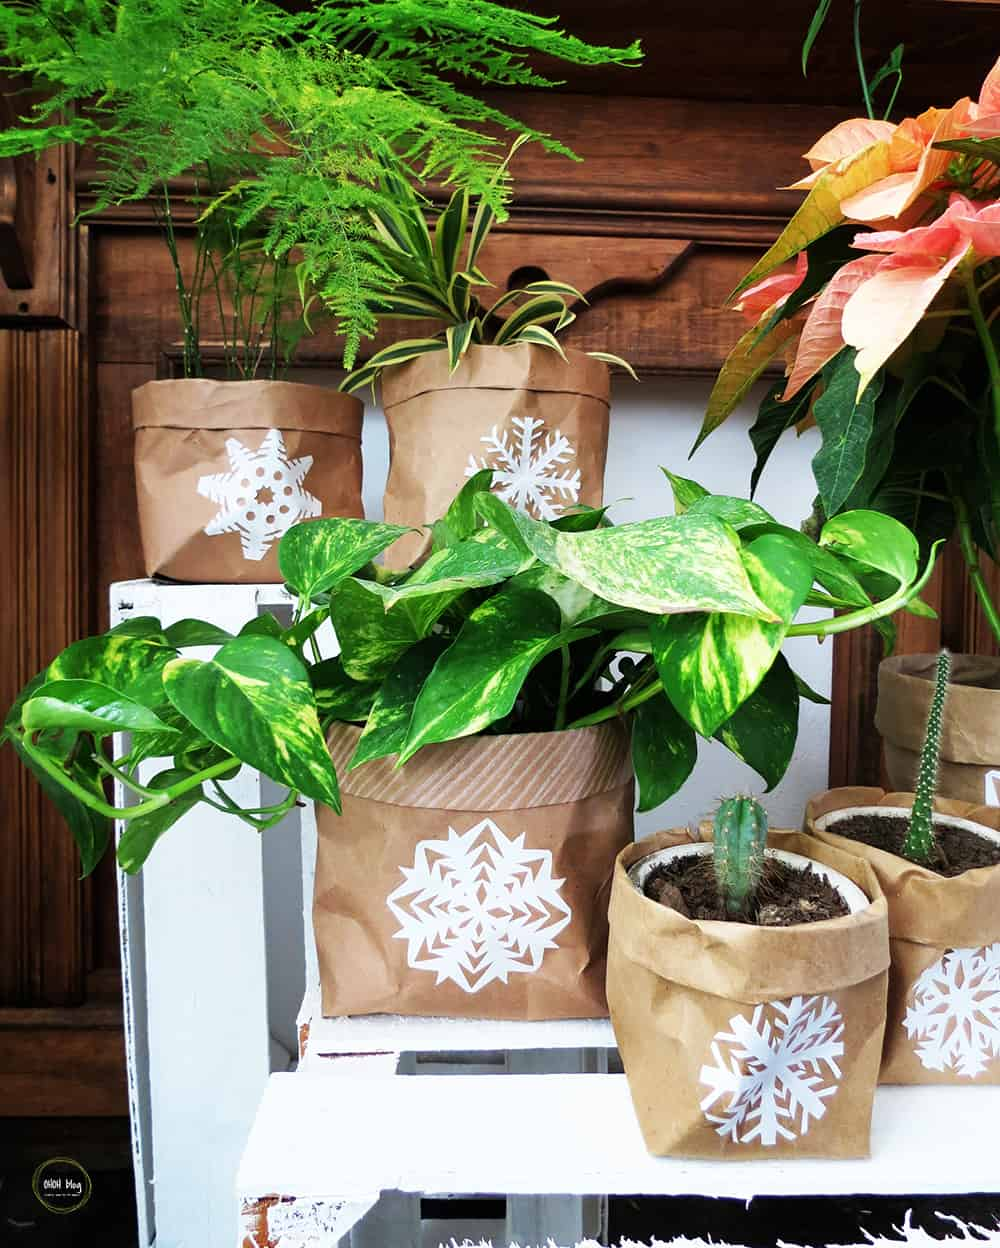 How to dress up your plants for Christmas